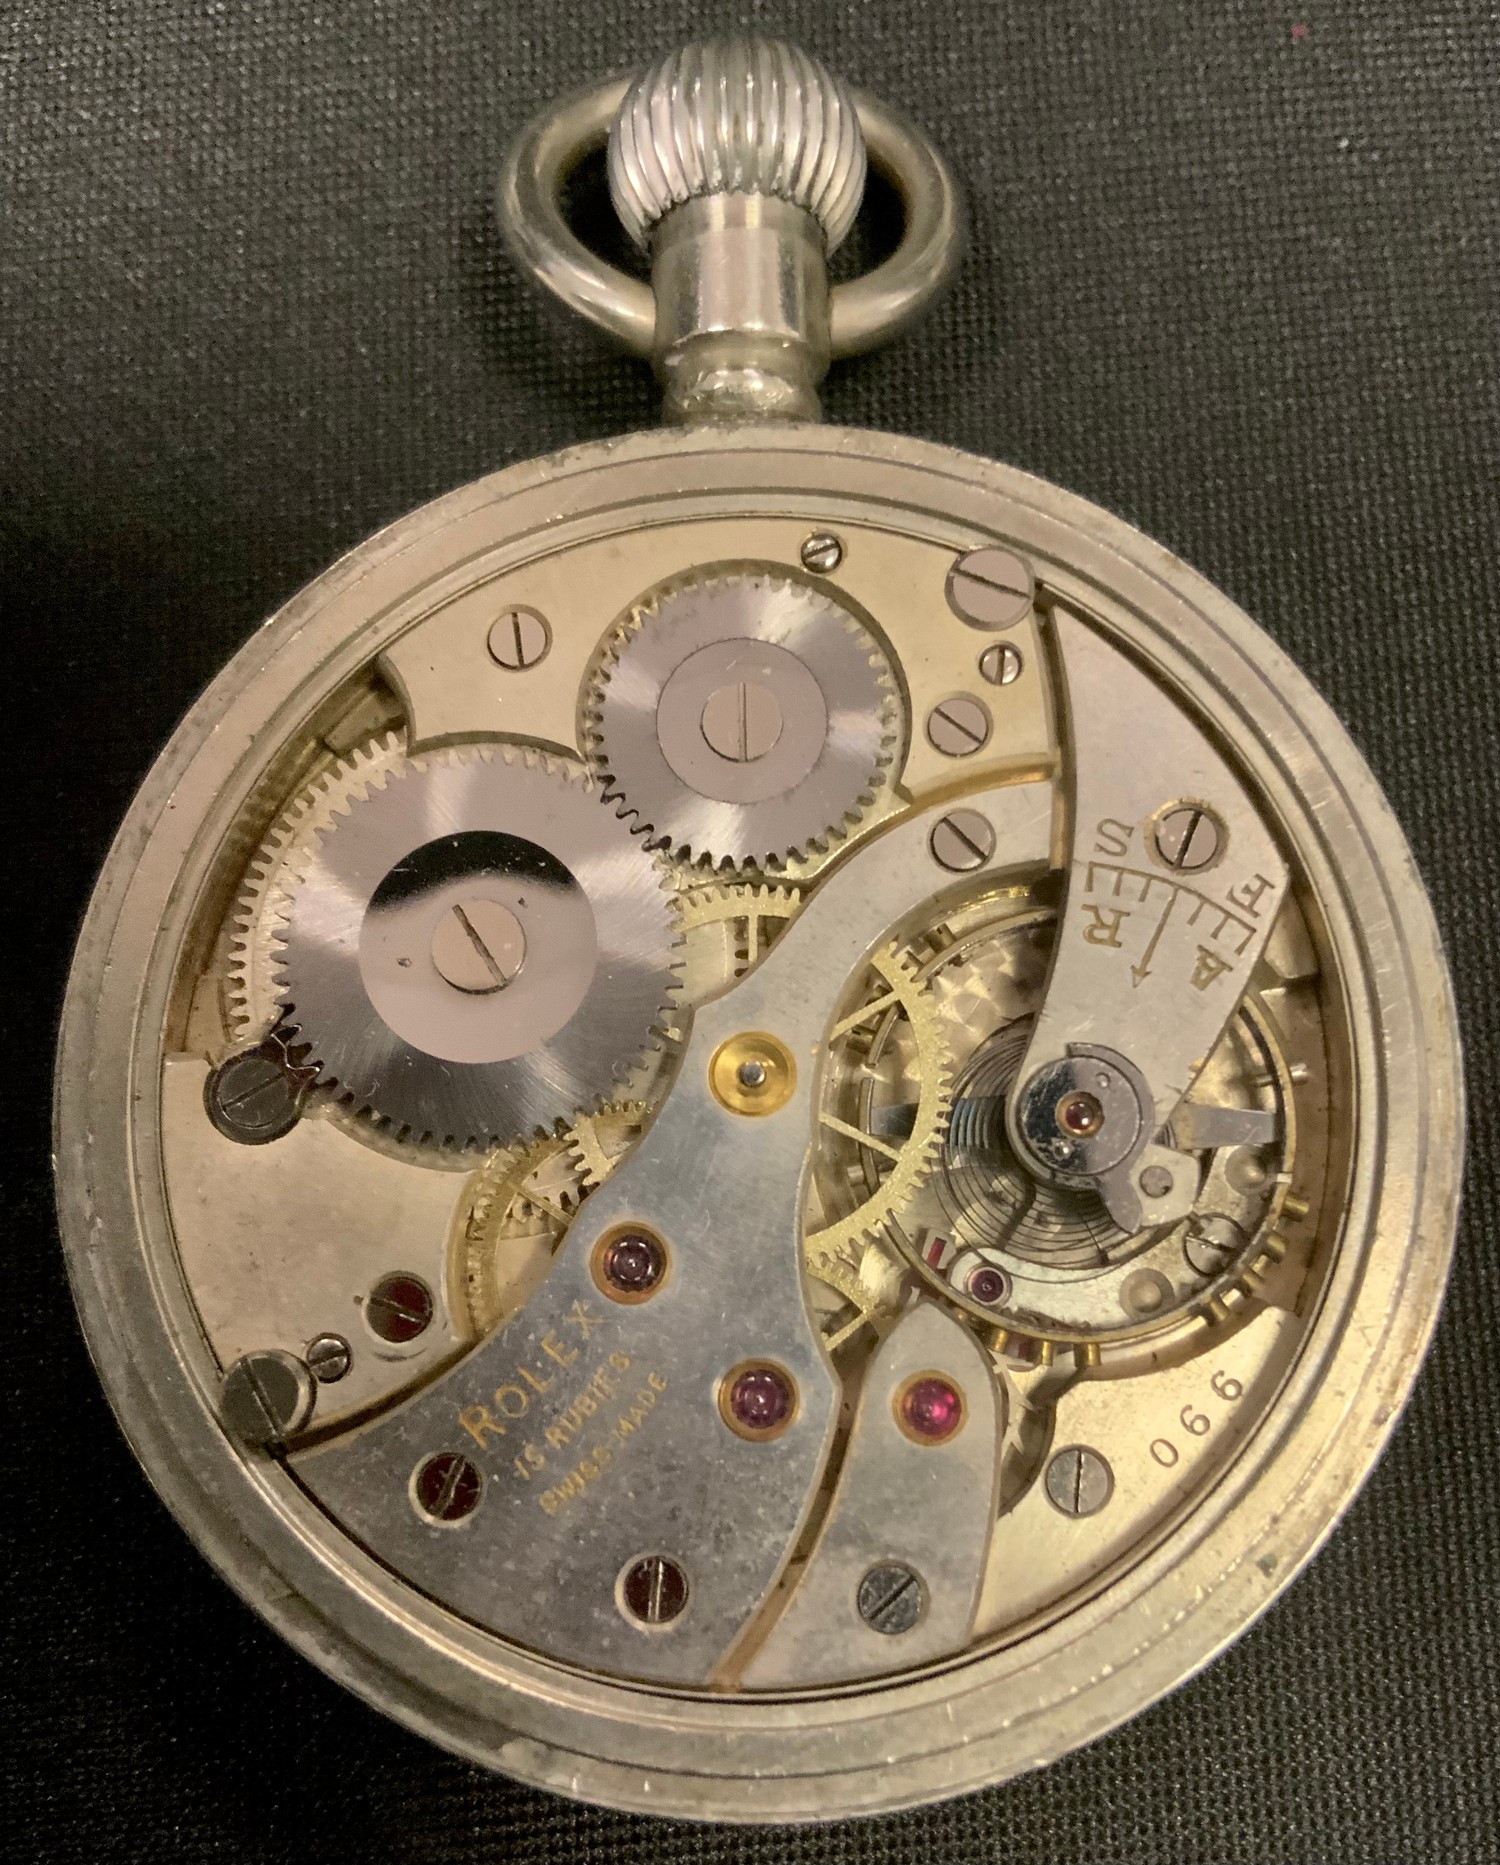 WW2 'Military' style private purchase Rolex A10030 open faced pocket watch, black enamel dial gold - Image 2 of 10